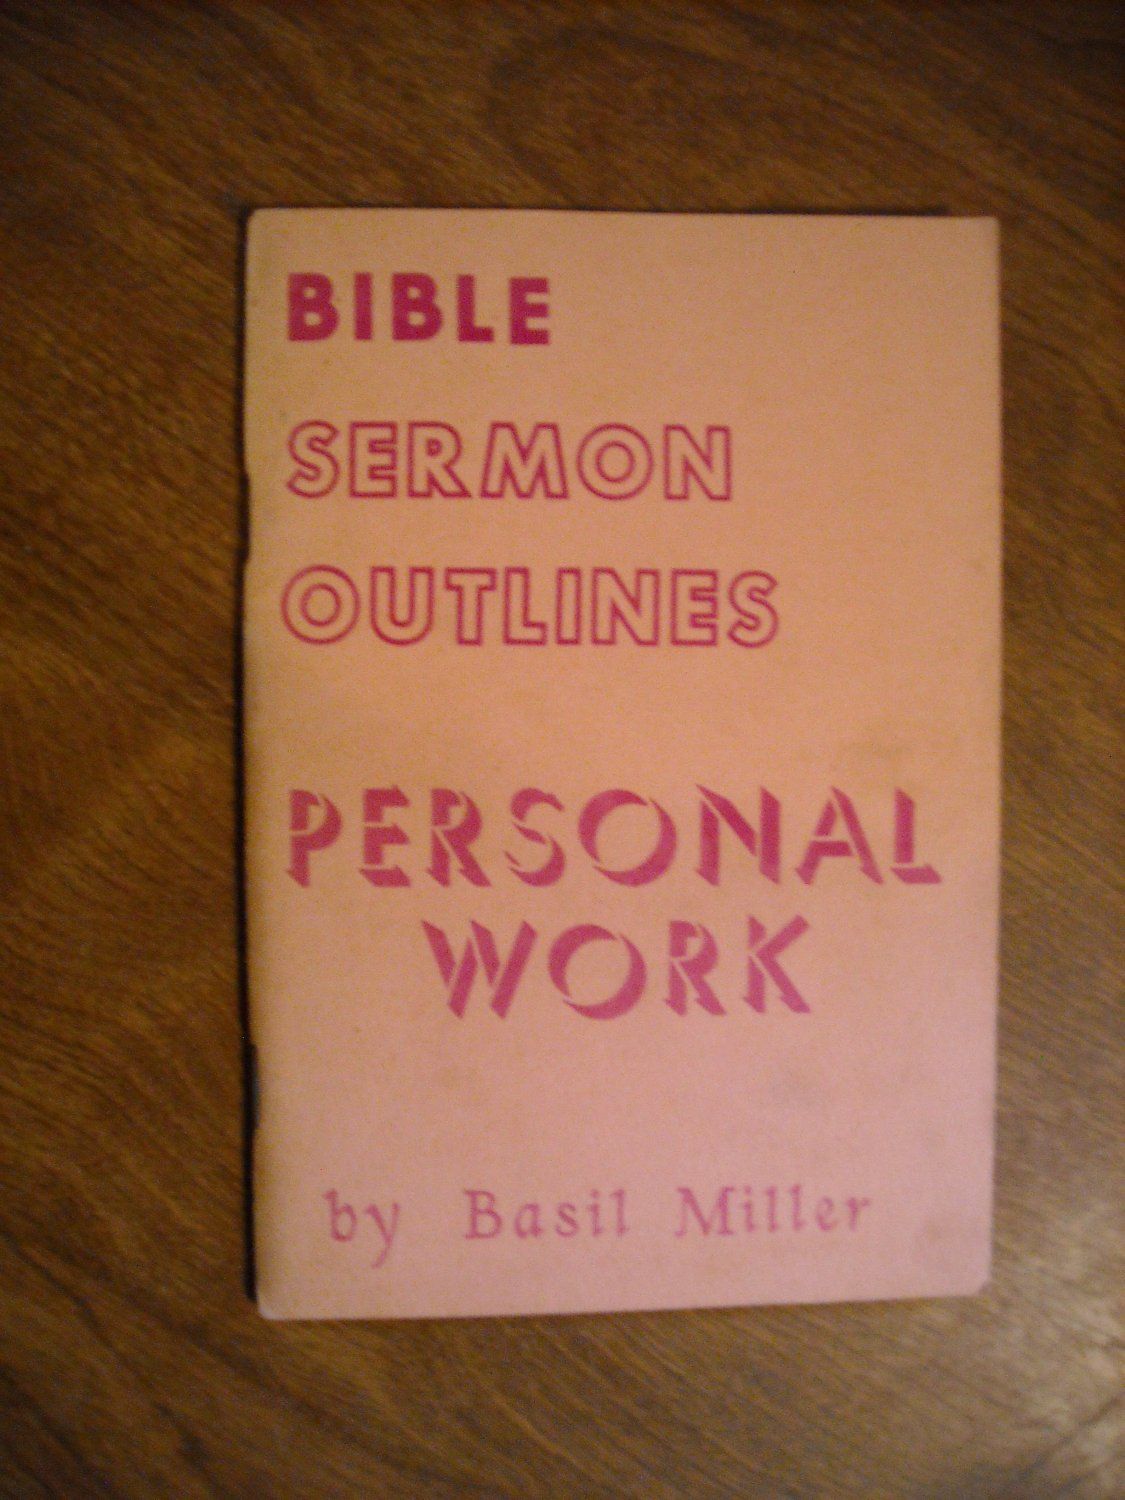 Bible Sermon Outlines - Personal Work by Basil Miller (1963)